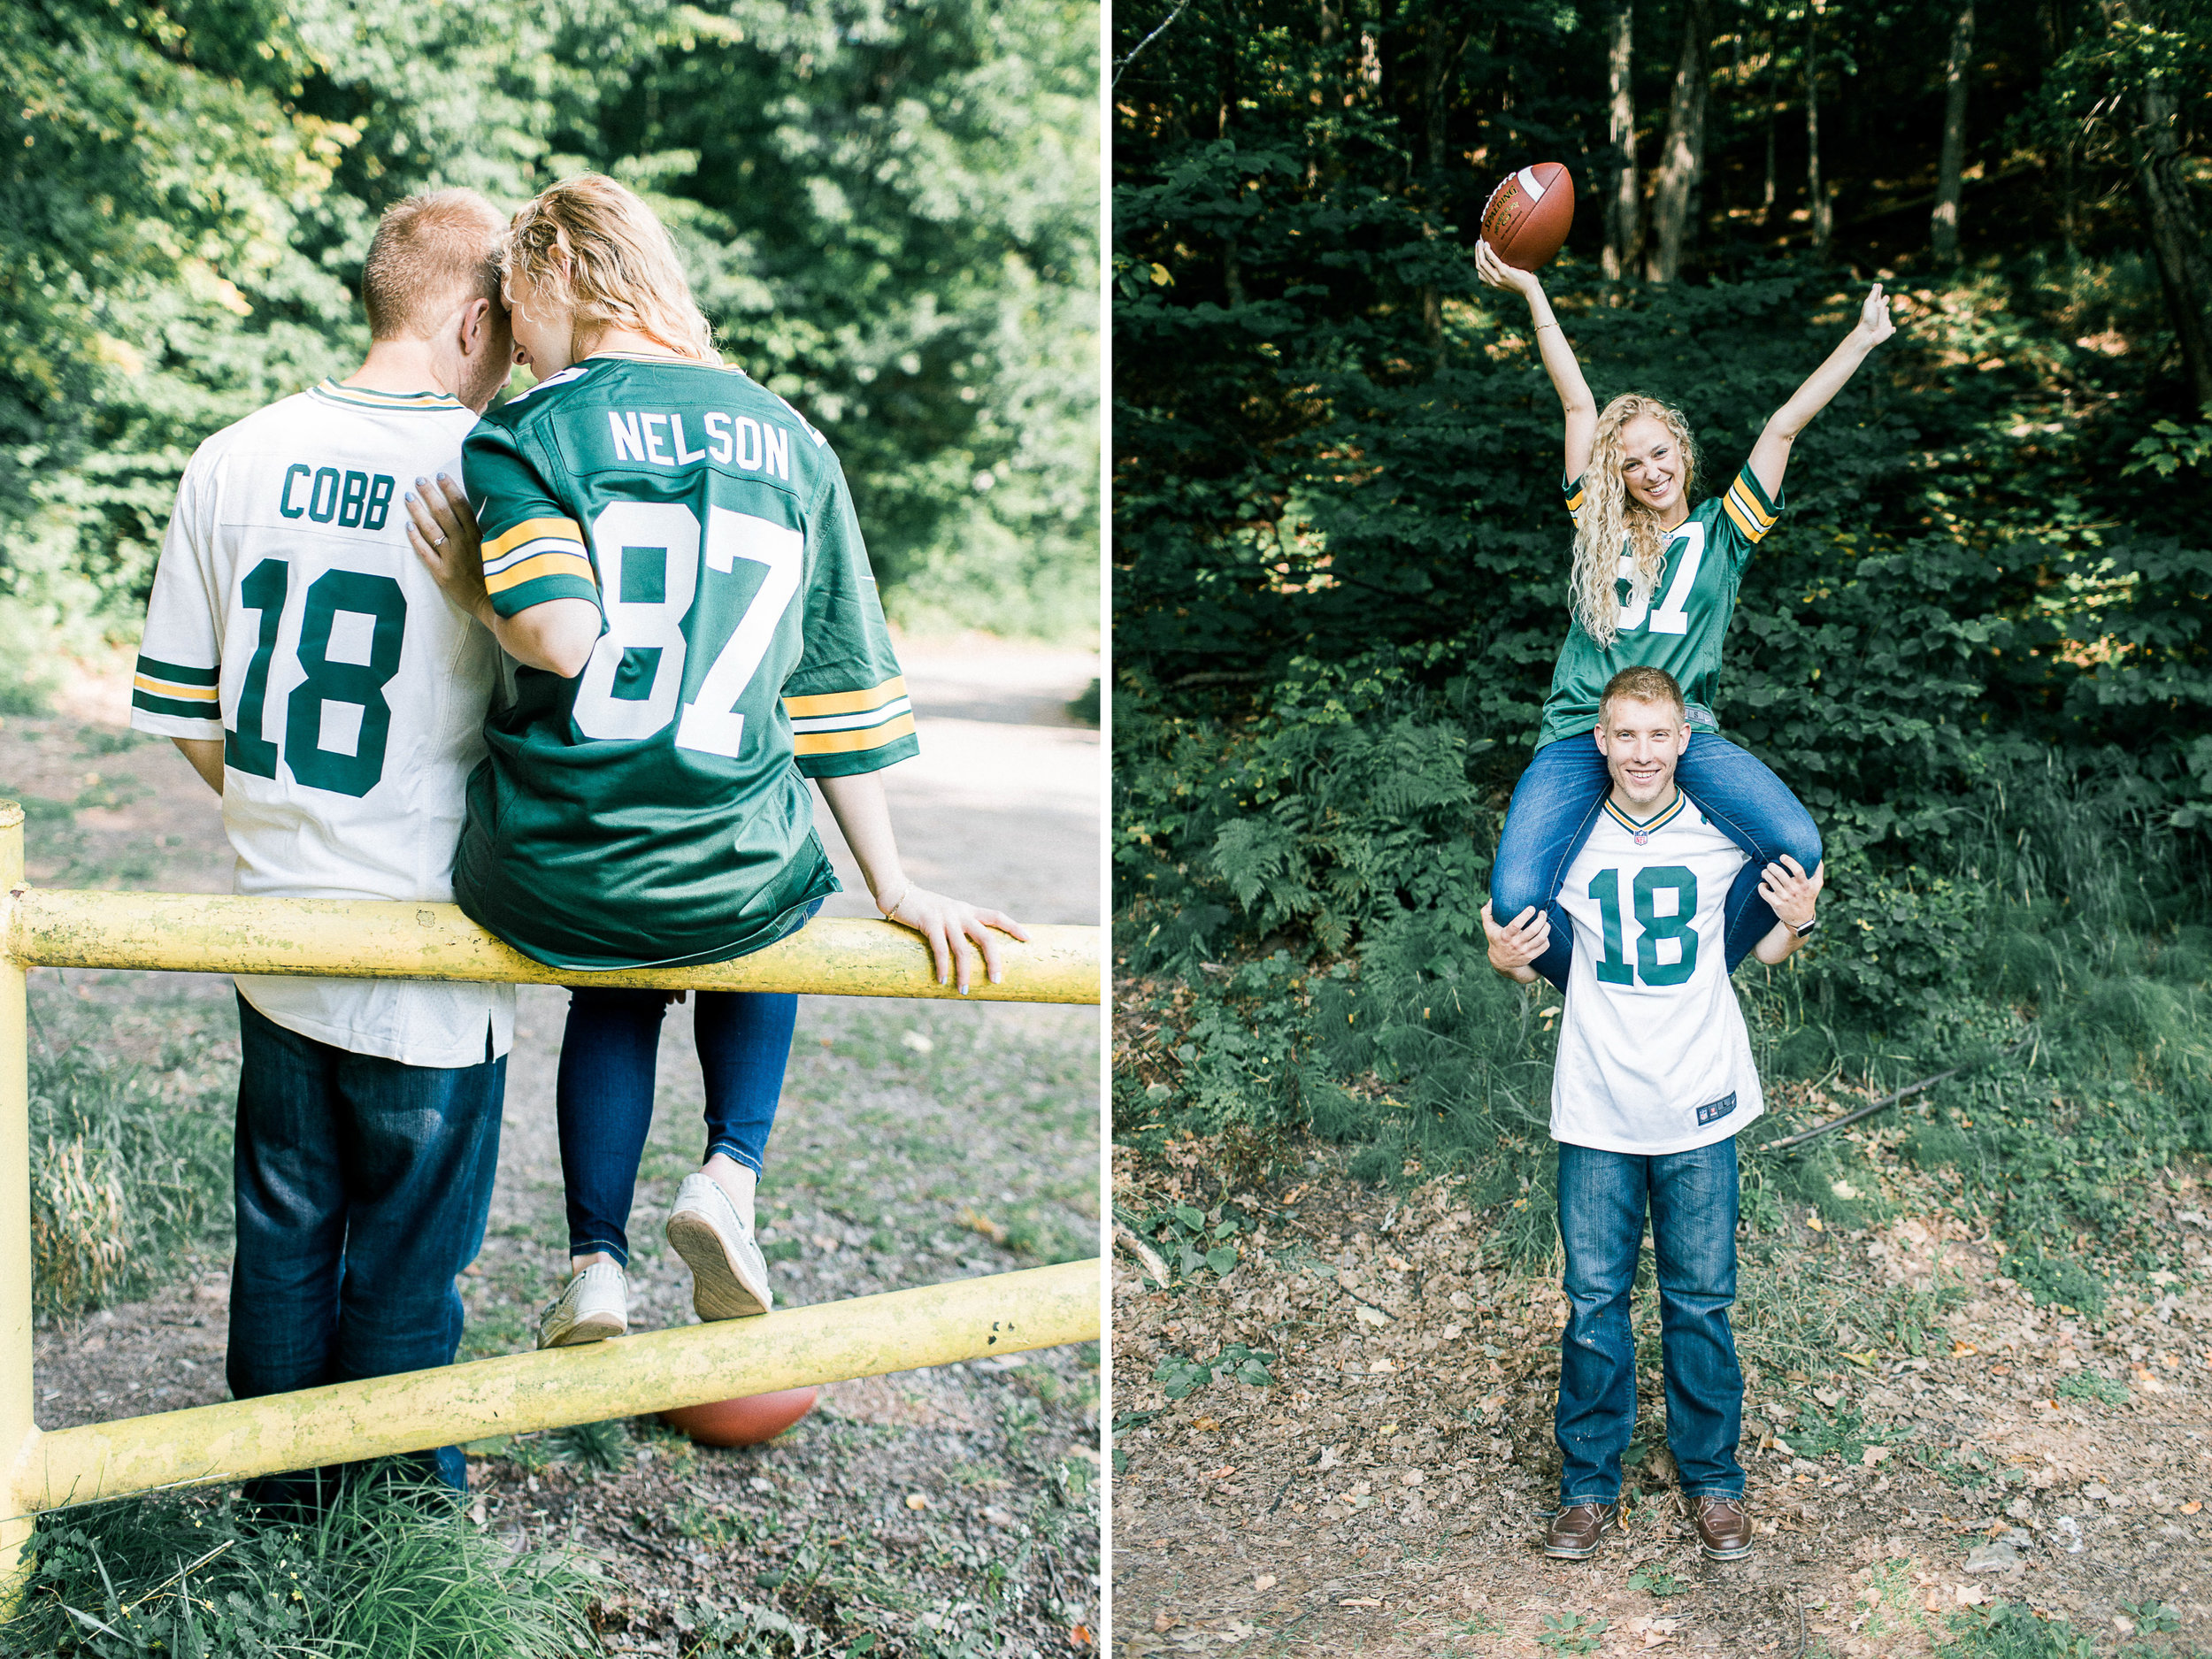 Lauren told me that her husband to be has converted her into a Packers fan! Since then, he bought her a jersey so of course they had to get some fan photos haha! With football season starting up, it seemed like the right way to end this yooper shoot.